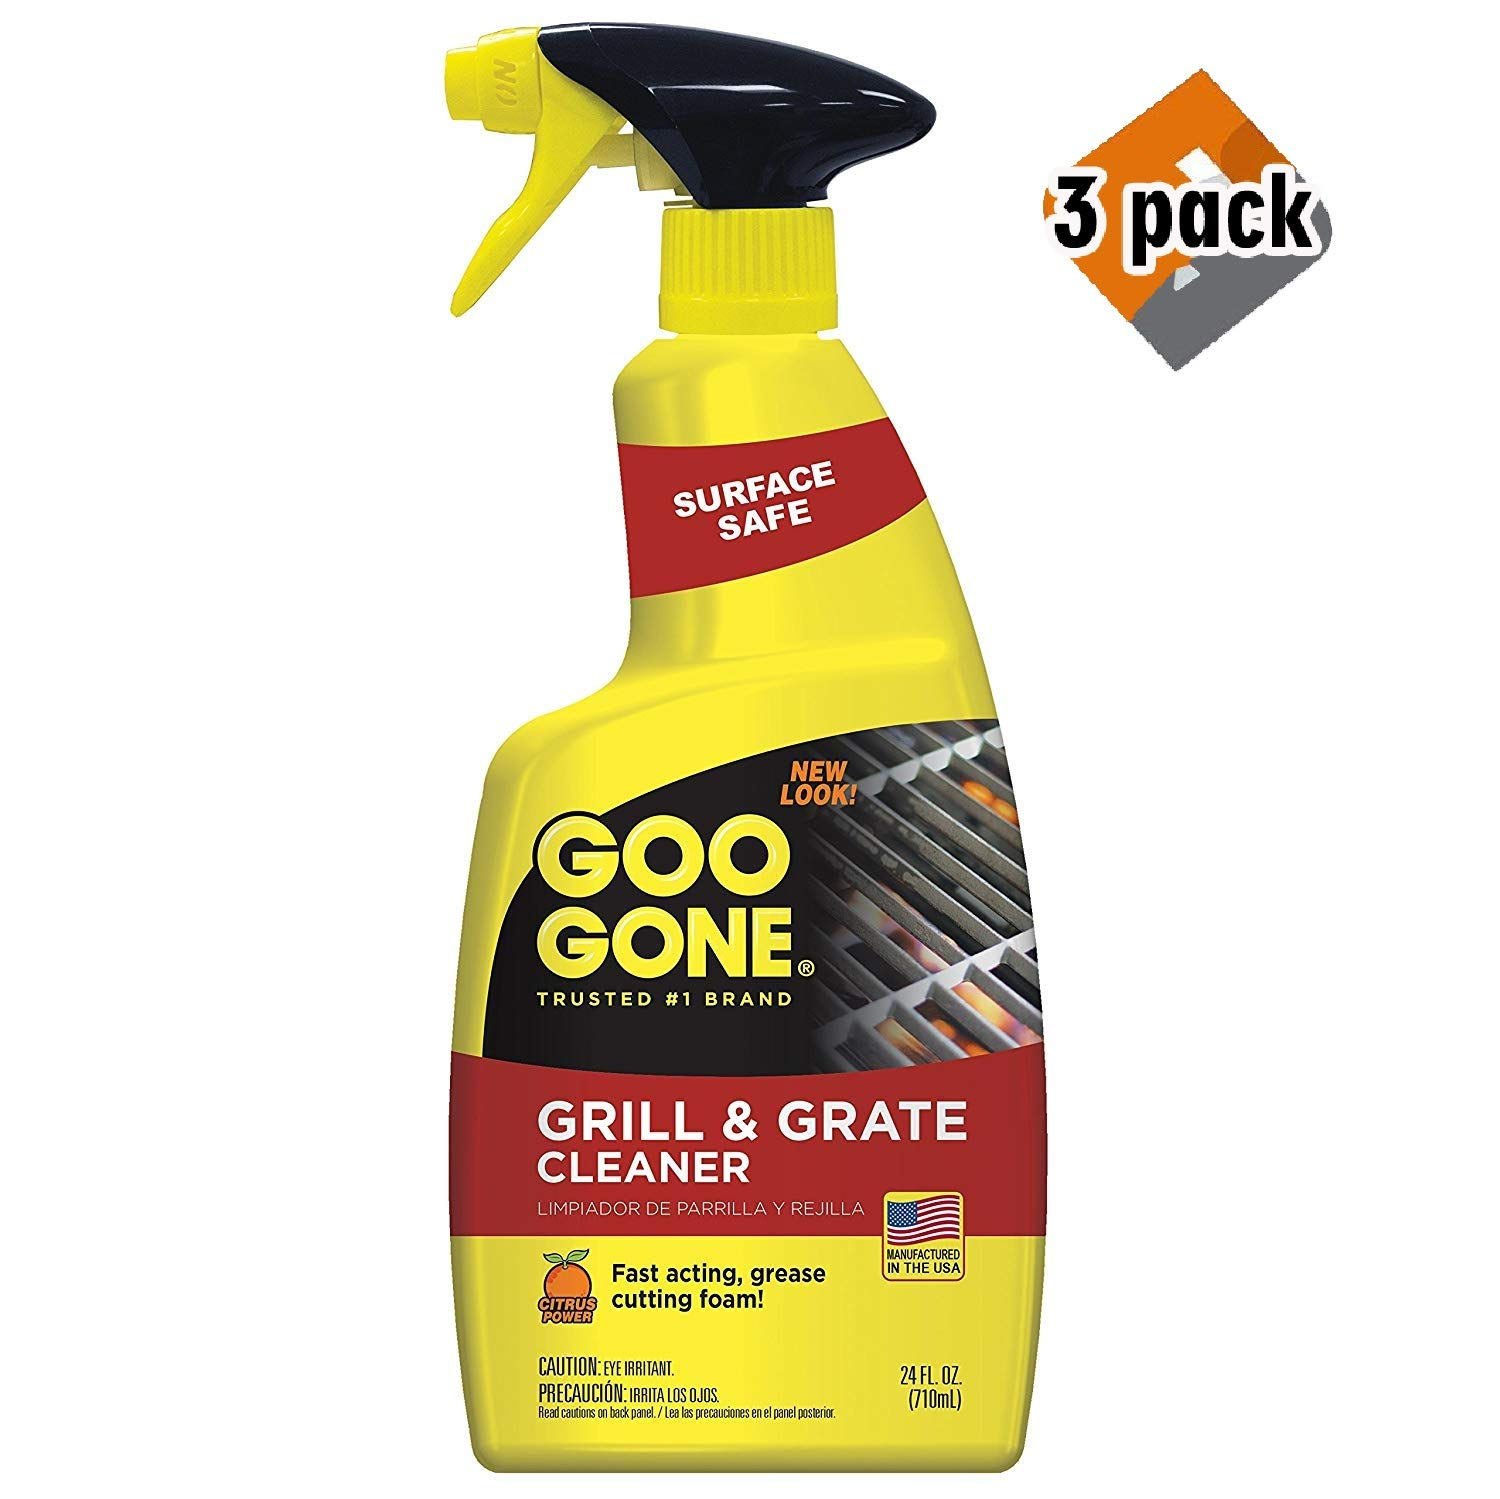 Goo Gone Grill and Grate Cleaner - 24 Ounce - Cleans Cooking Grates and Racks - 3 Pack by Goo Gone